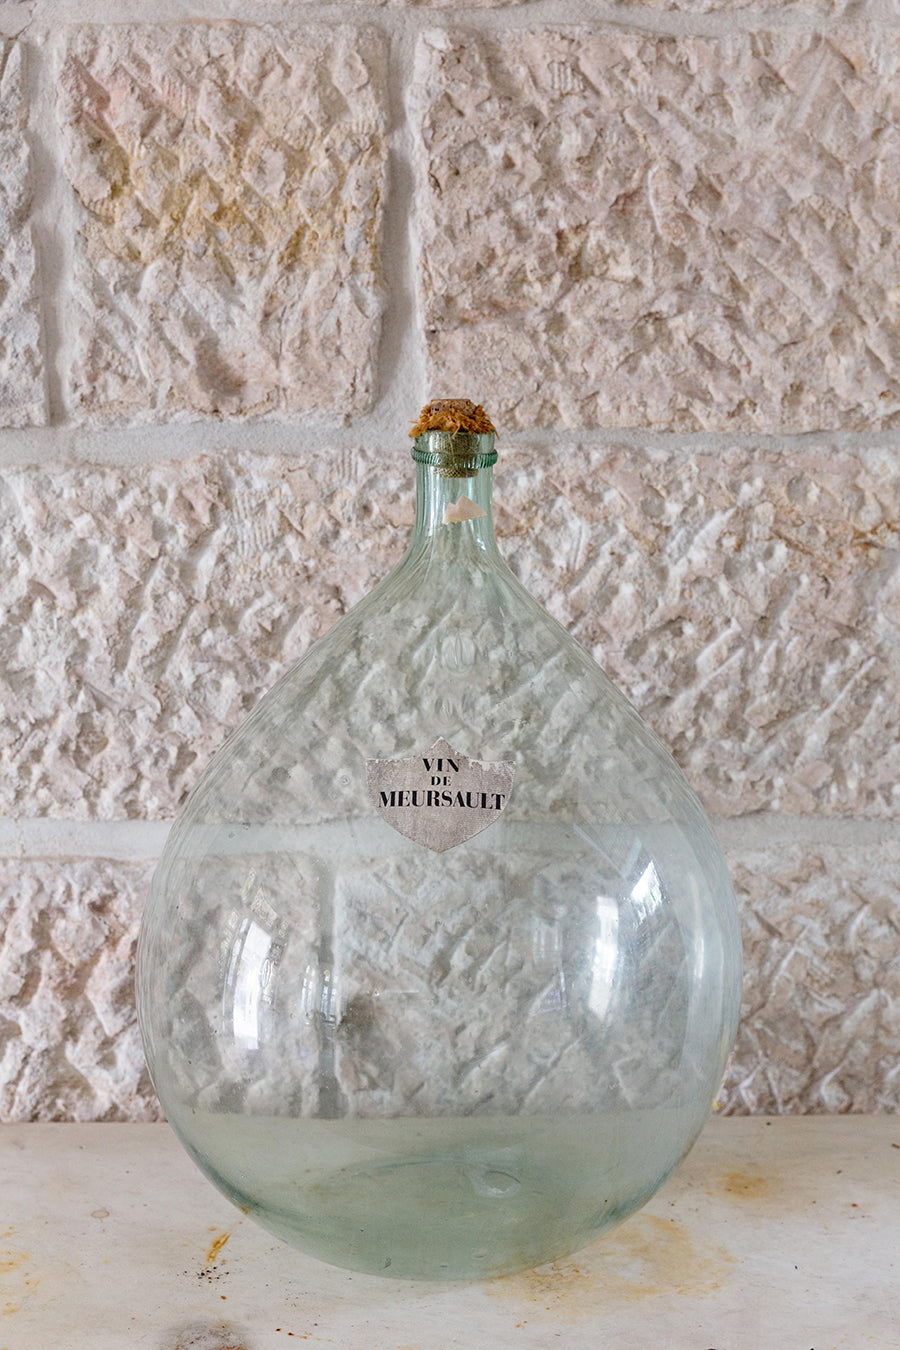 Large French demijohn